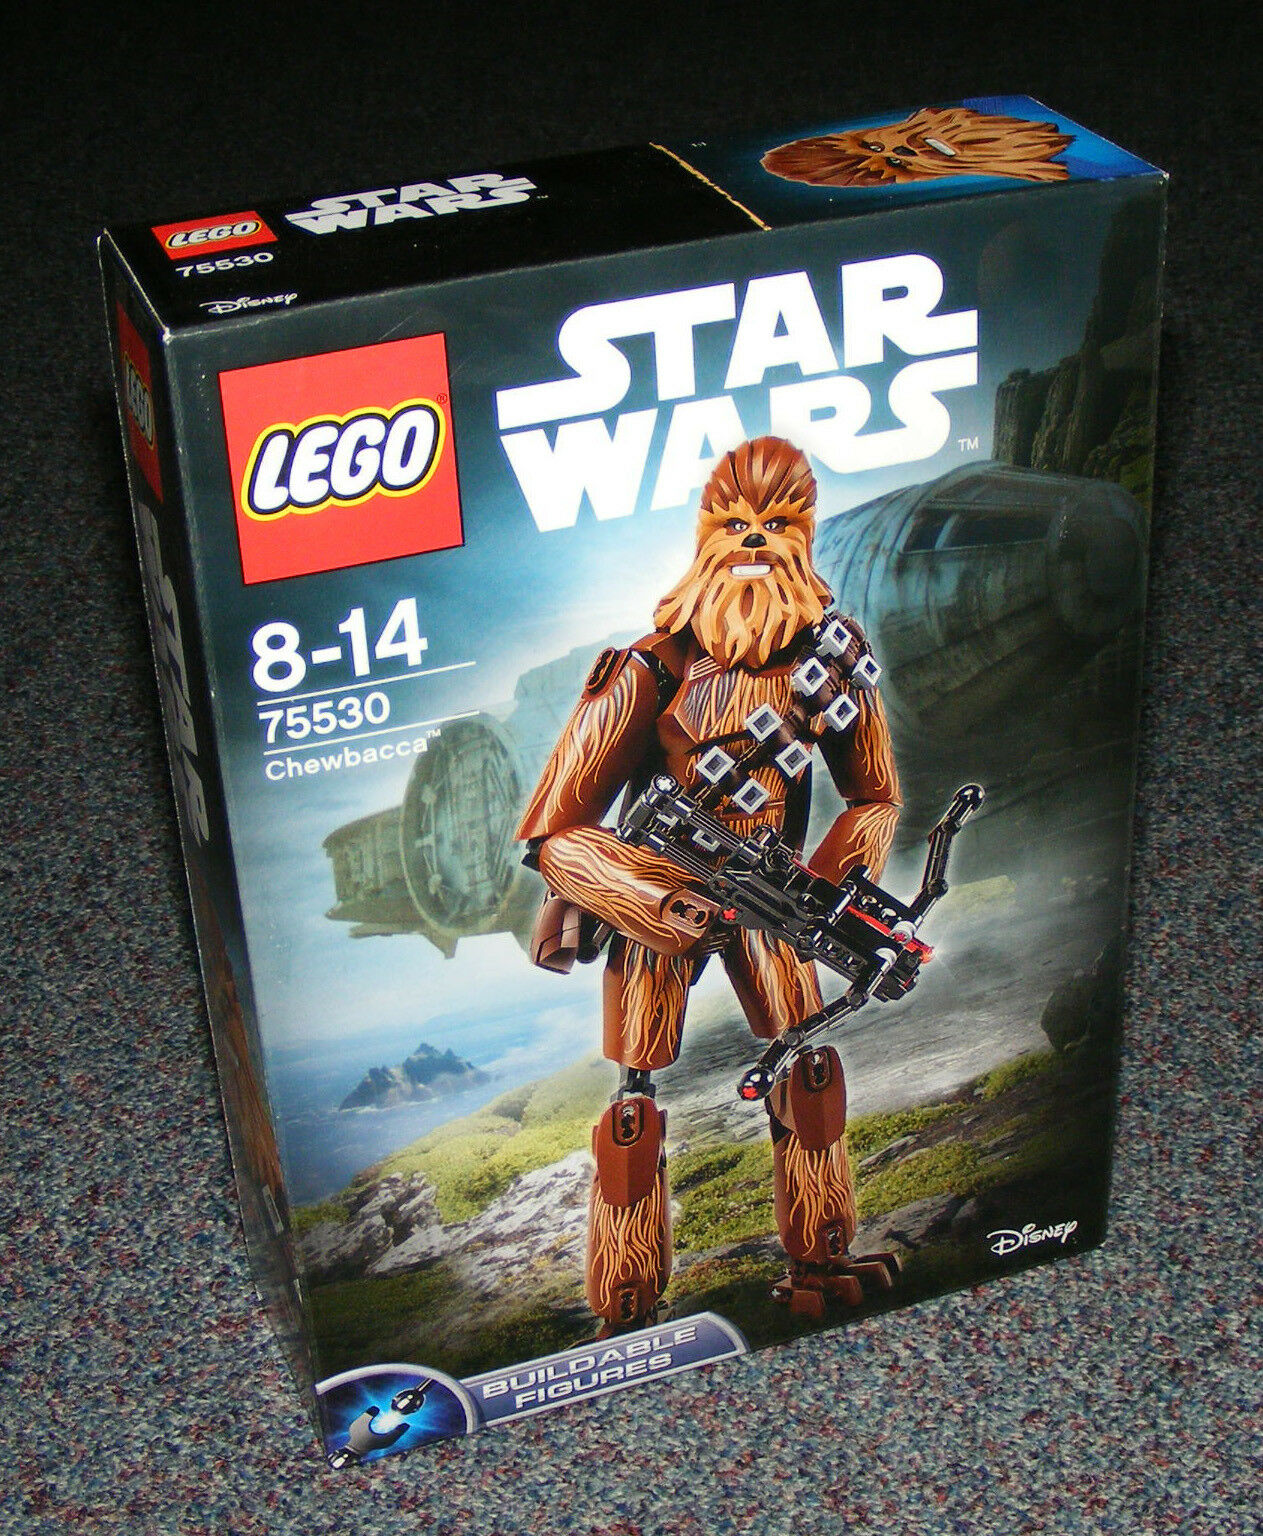 STAR WARS LEGO 75530 CHEWBACCA BUILDABLE FIGURE BRAND NEW SEALED